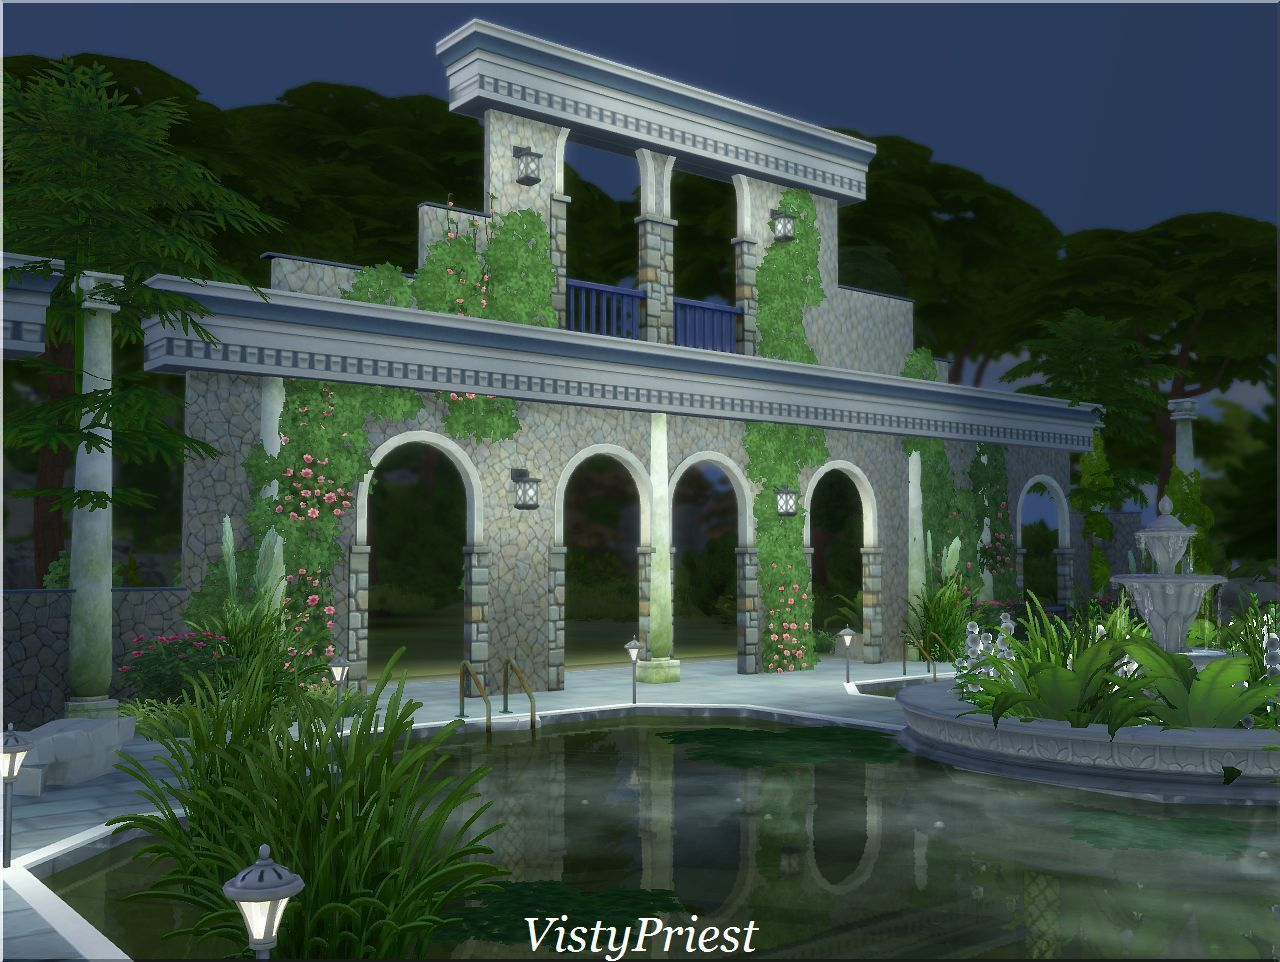 Pin by Carpe Sims on TS4 Builds | Sims 4 house building